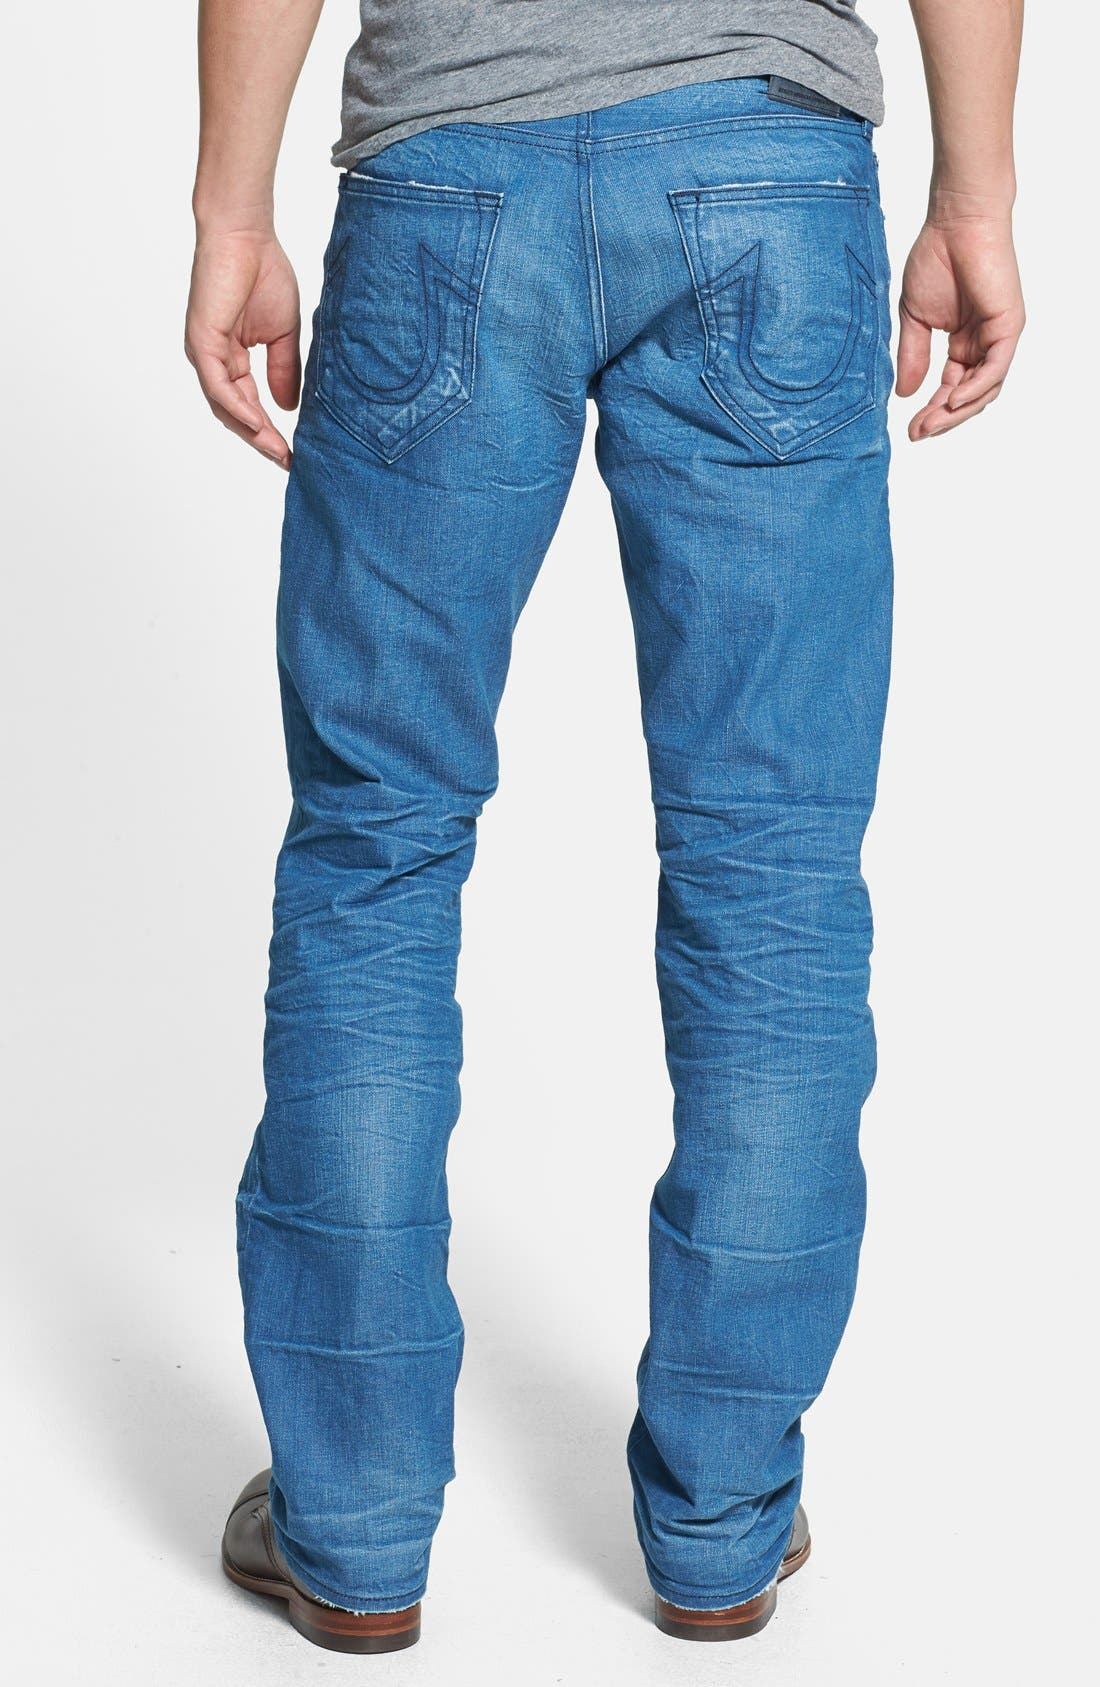 Alternate Image 1 Selected - True Religion Brand Jeans 'Bobby' Straight Leg Jeans (Azql Blue Caps)